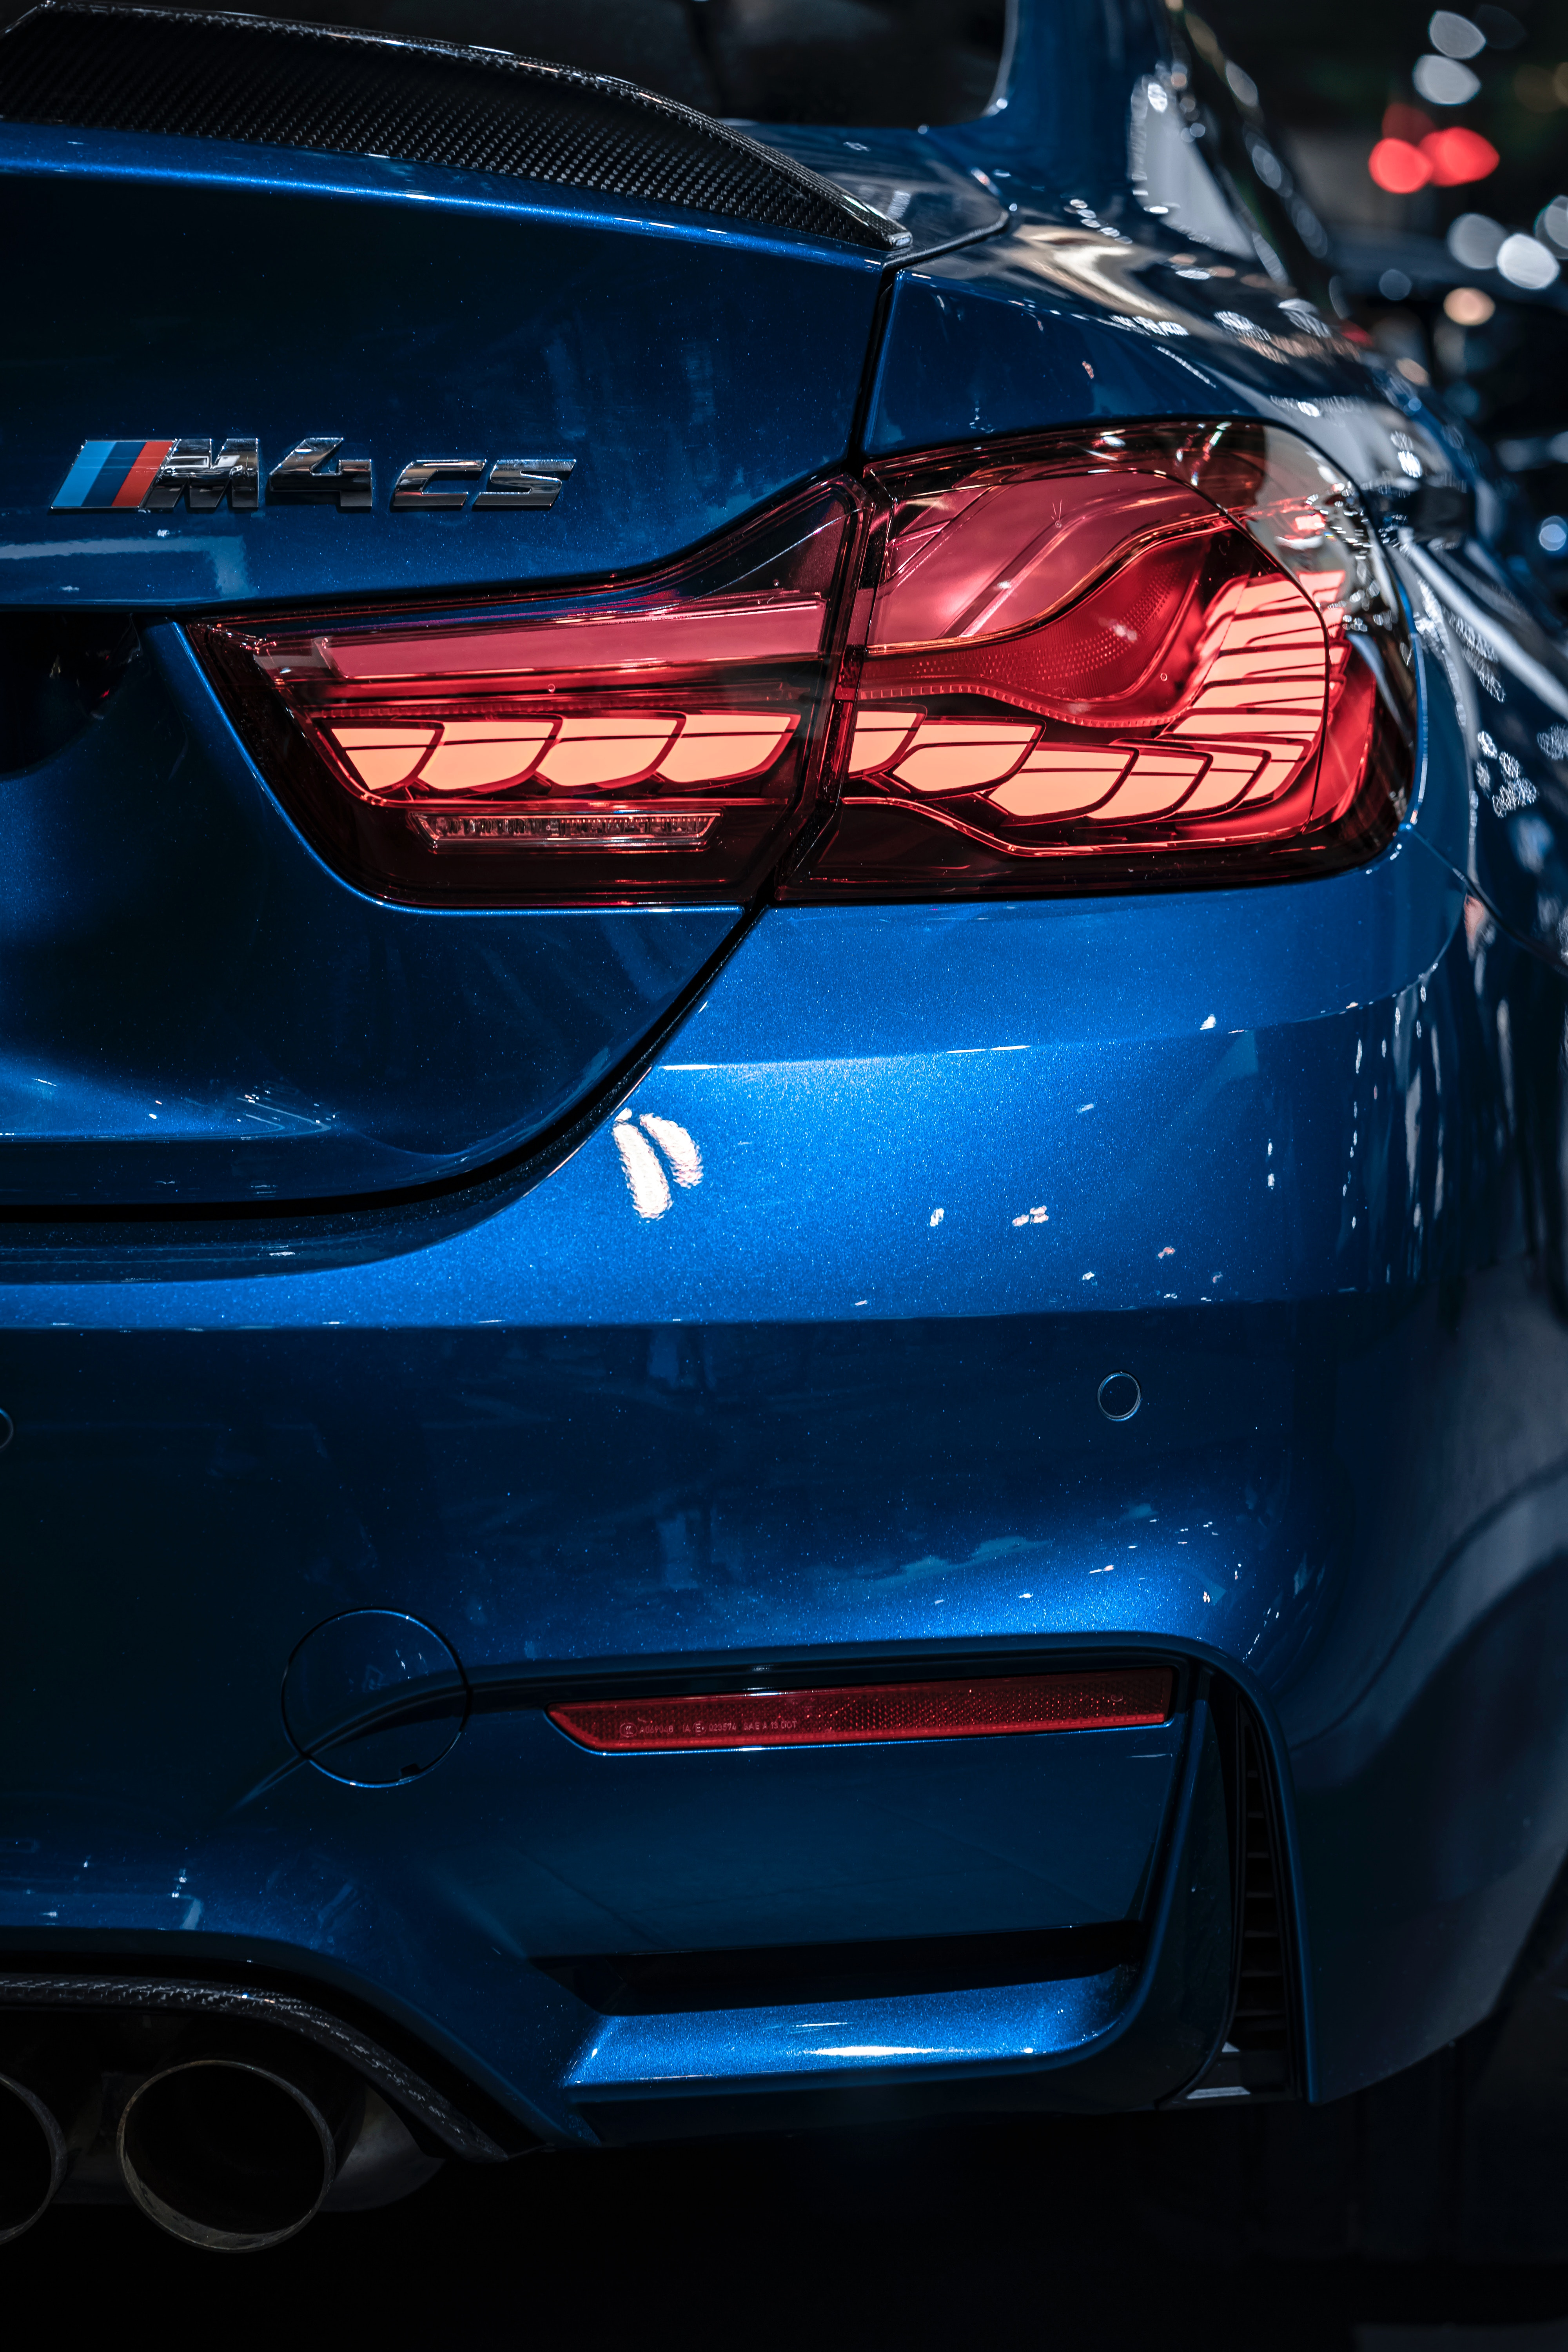 69540 download wallpaper Bmw, Cars, Back View, Rear View, Bmw M4 Cs screensavers and pictures for free